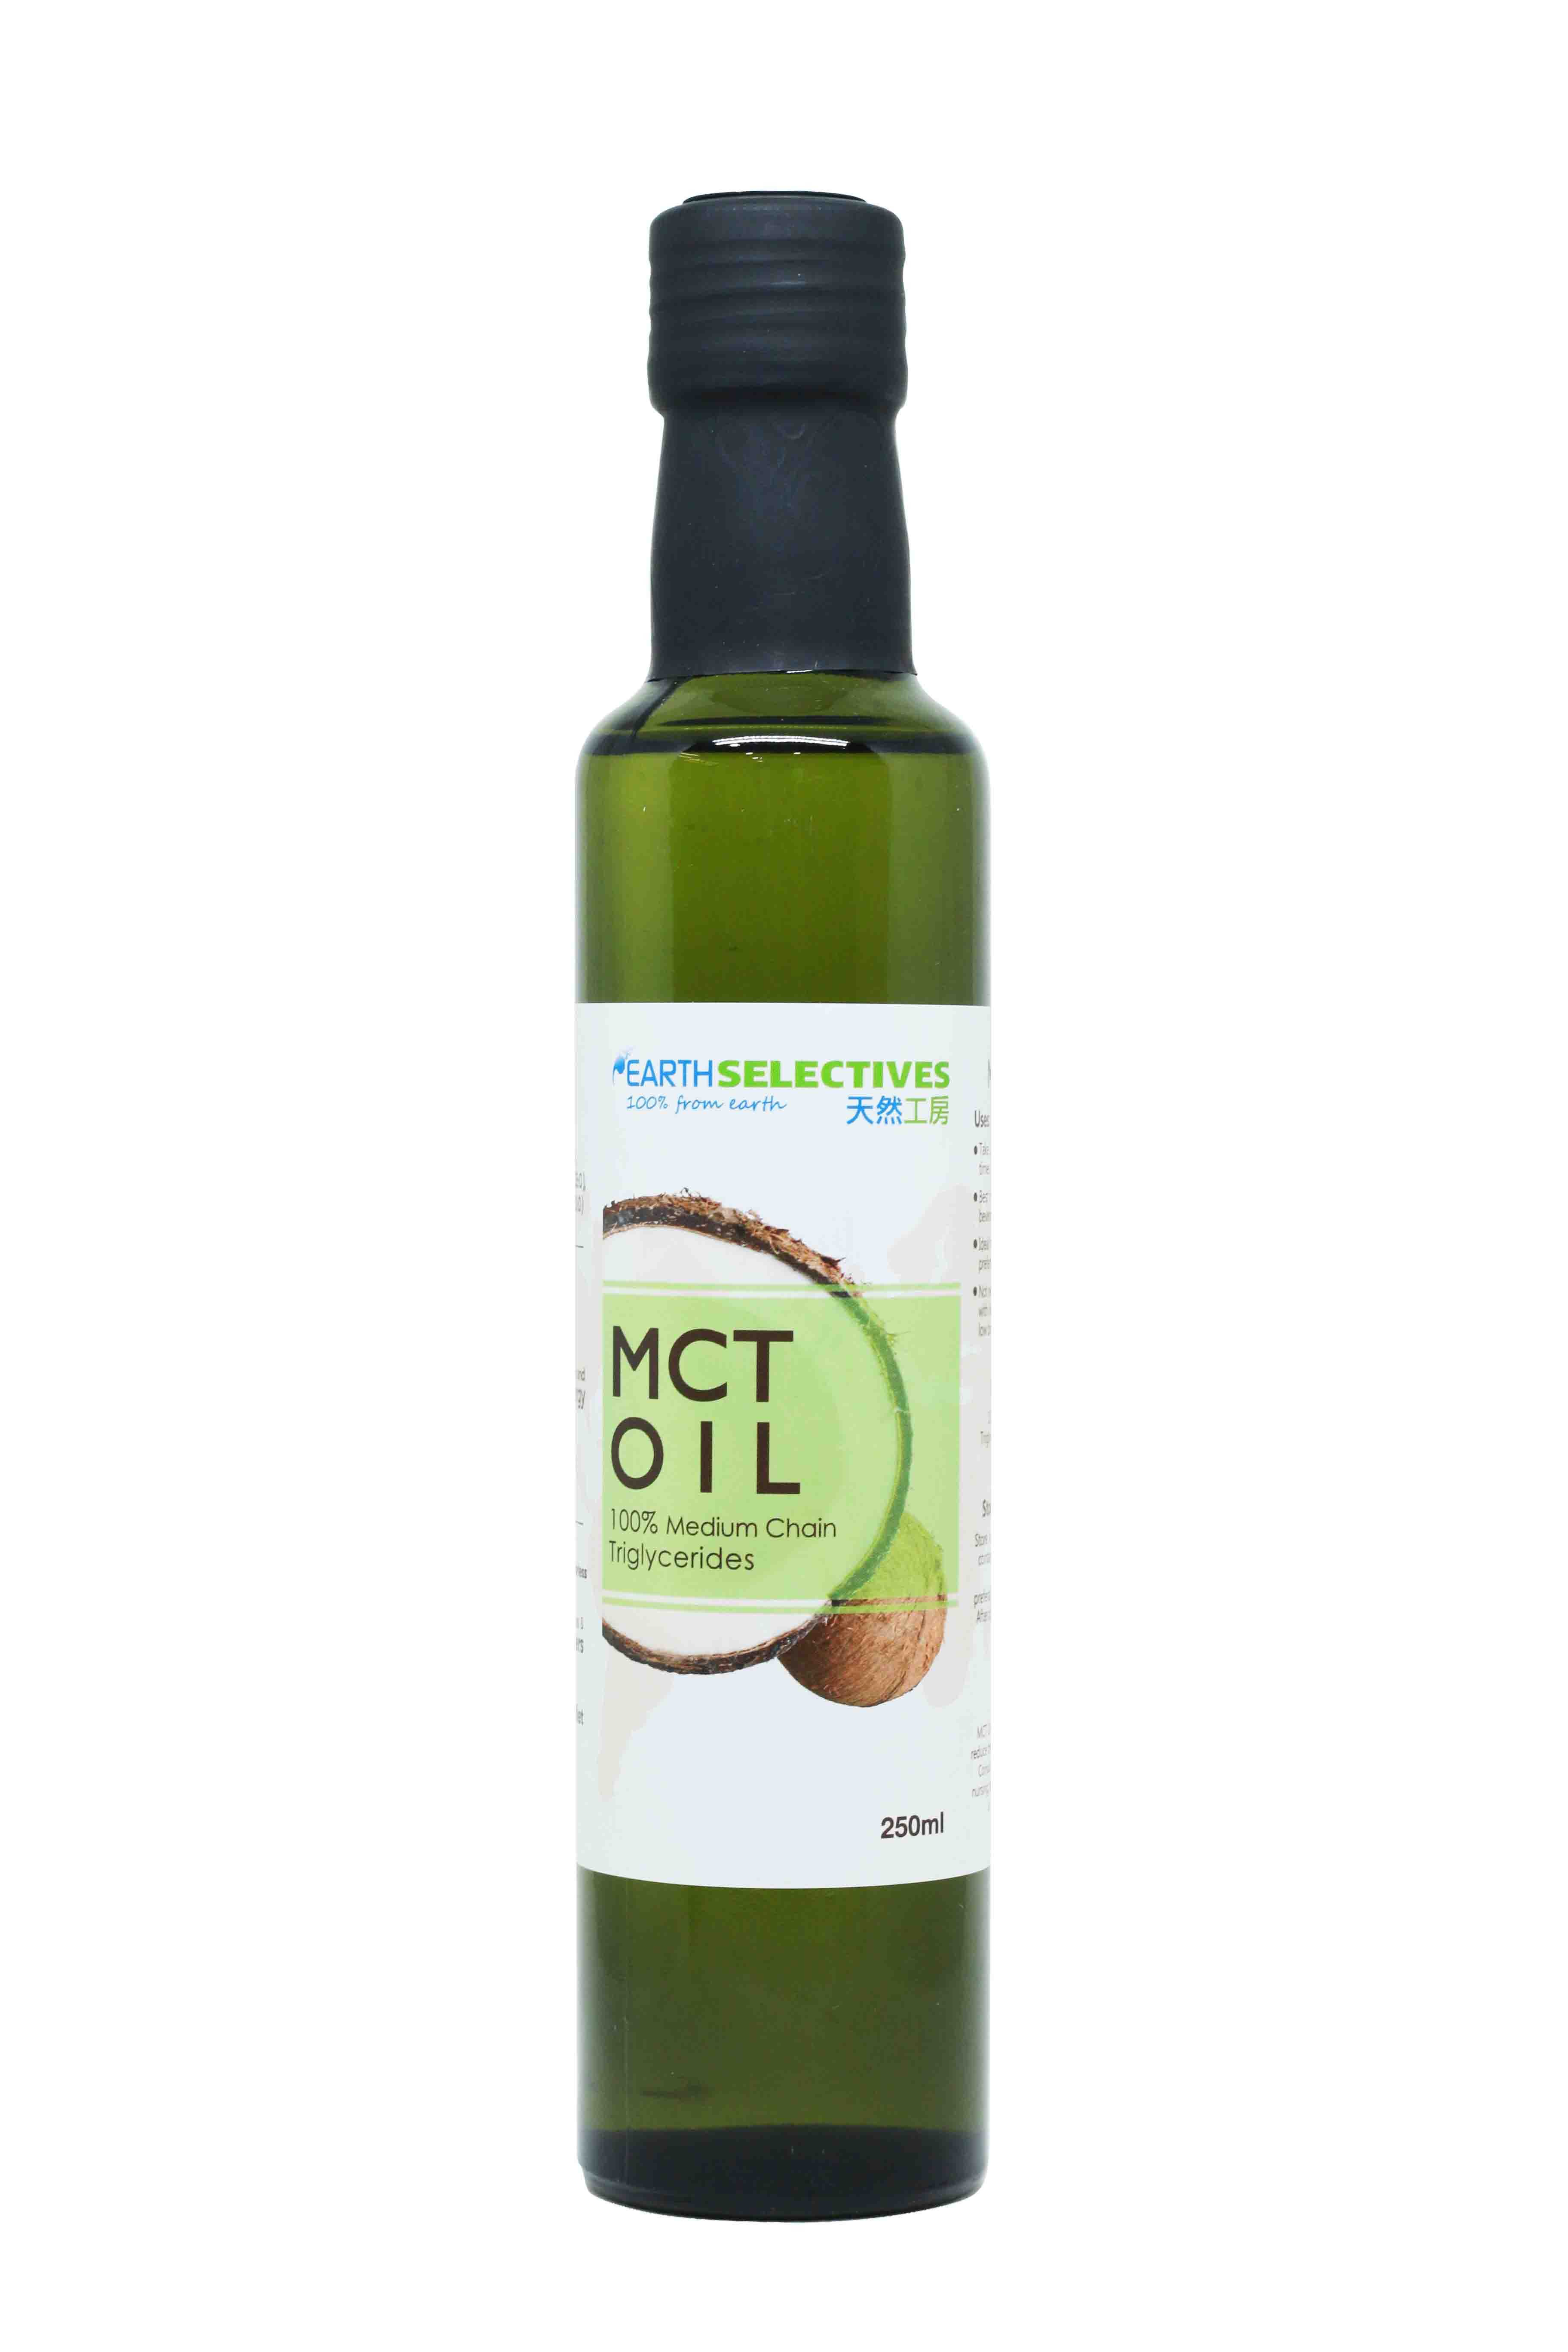 Earth Selectives MCT Oil 250ml